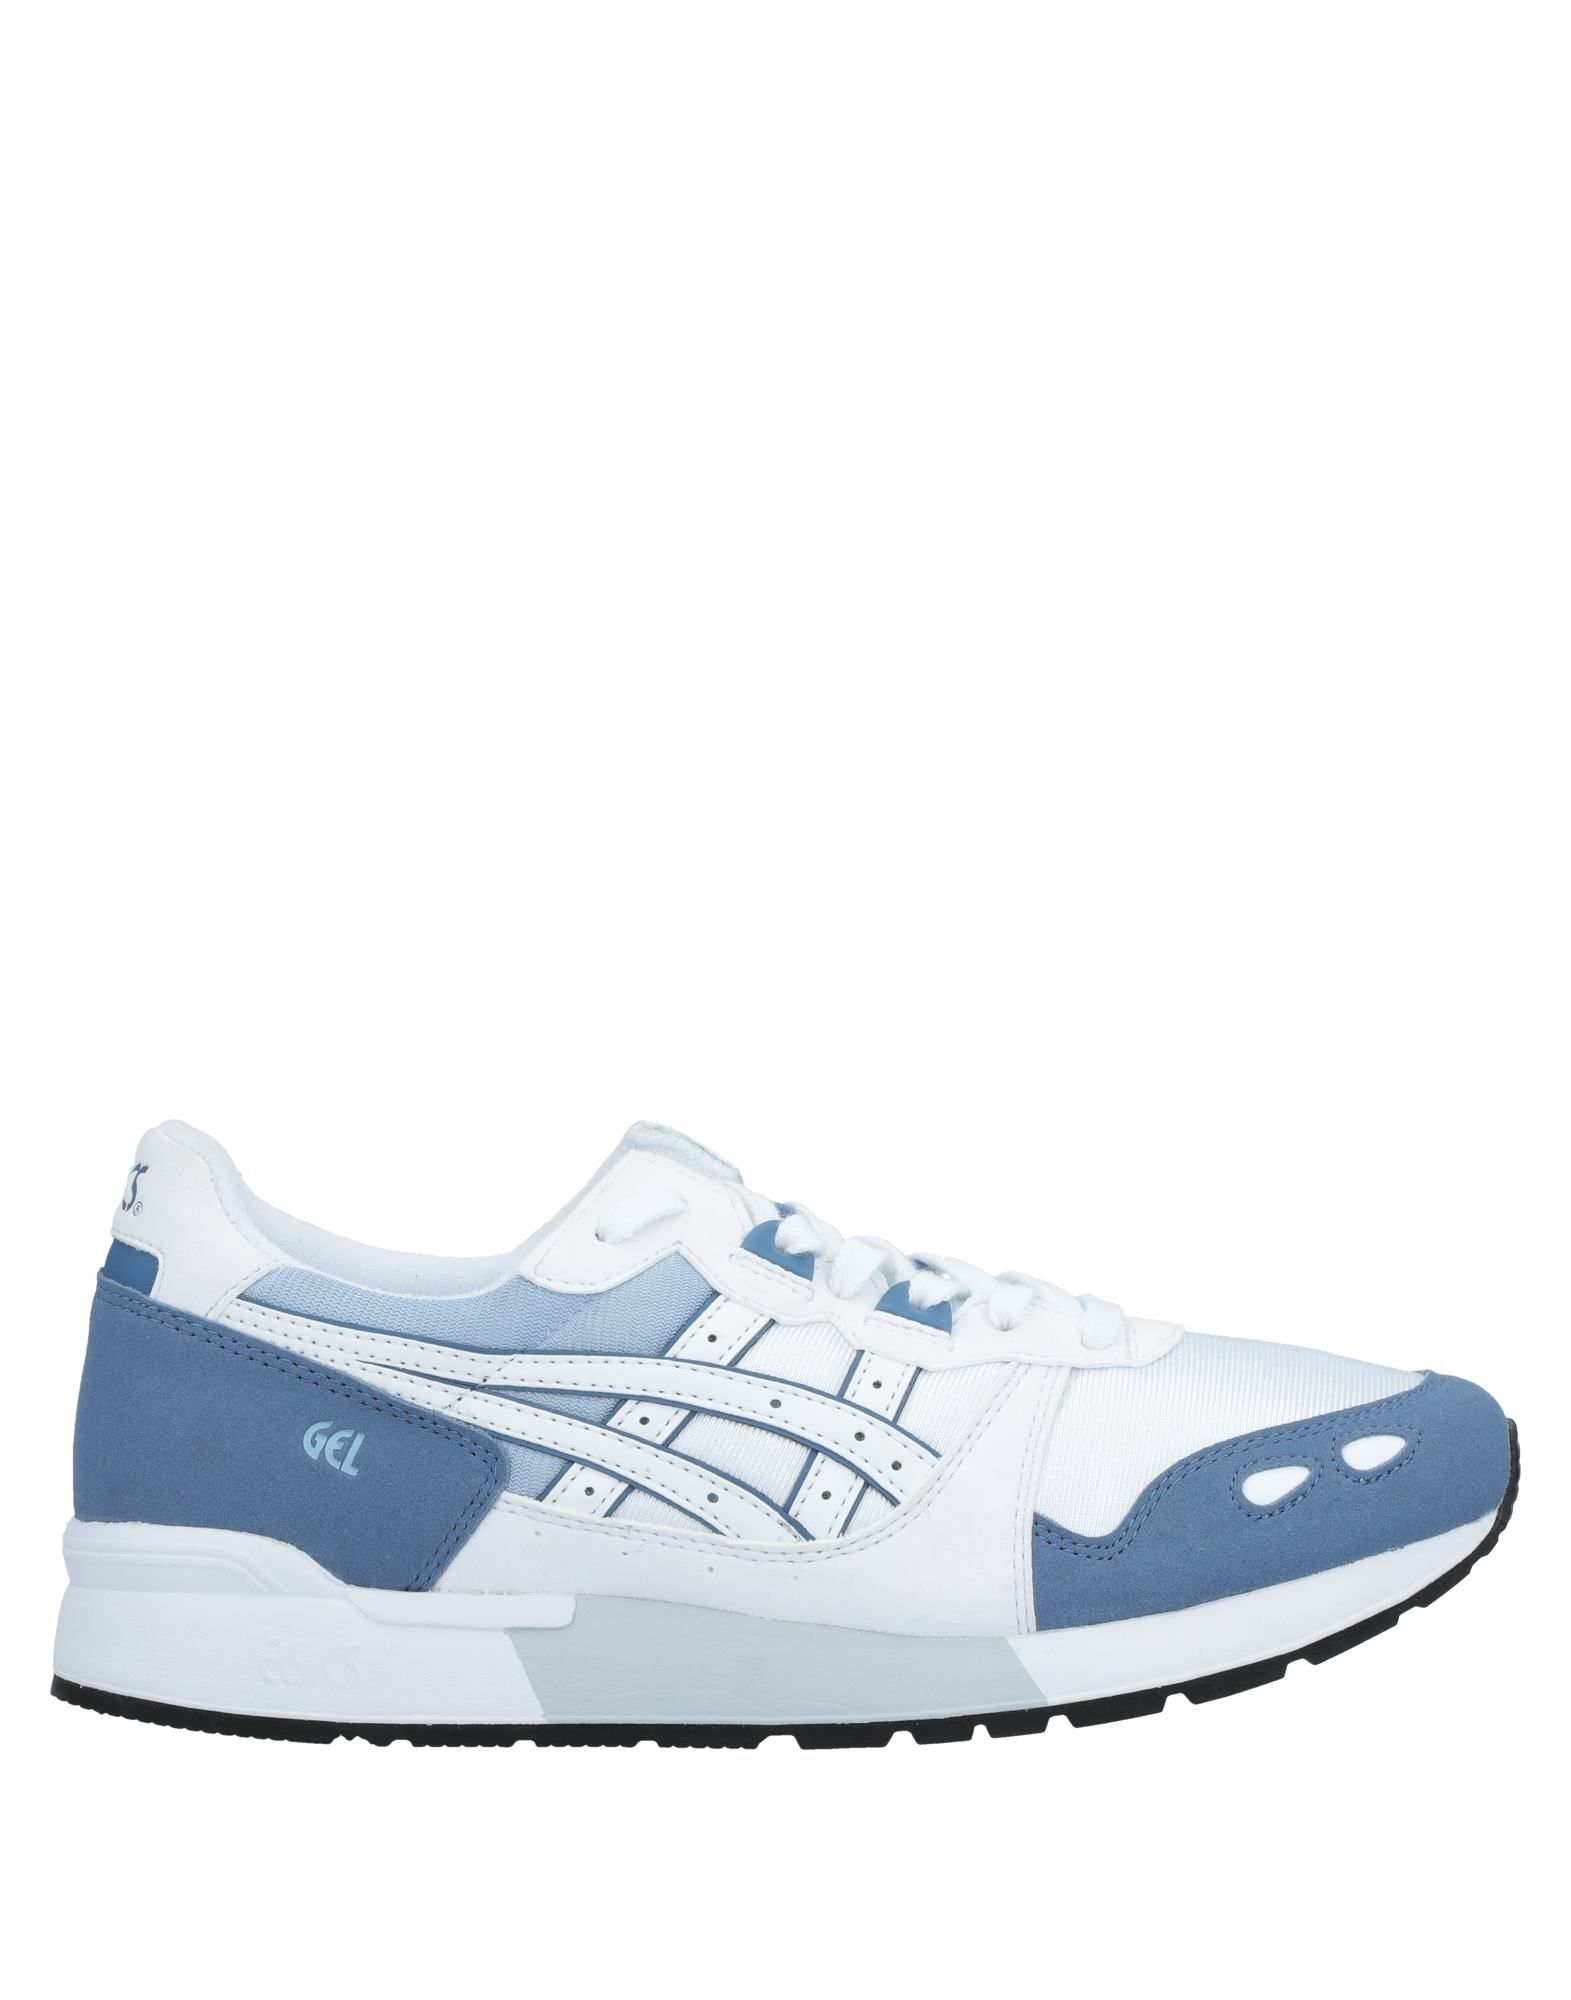 Asics Asics Asics Tiger Sneakers - Men Asics Tiger Sneakers online on  Australia - 11535671WC 508913